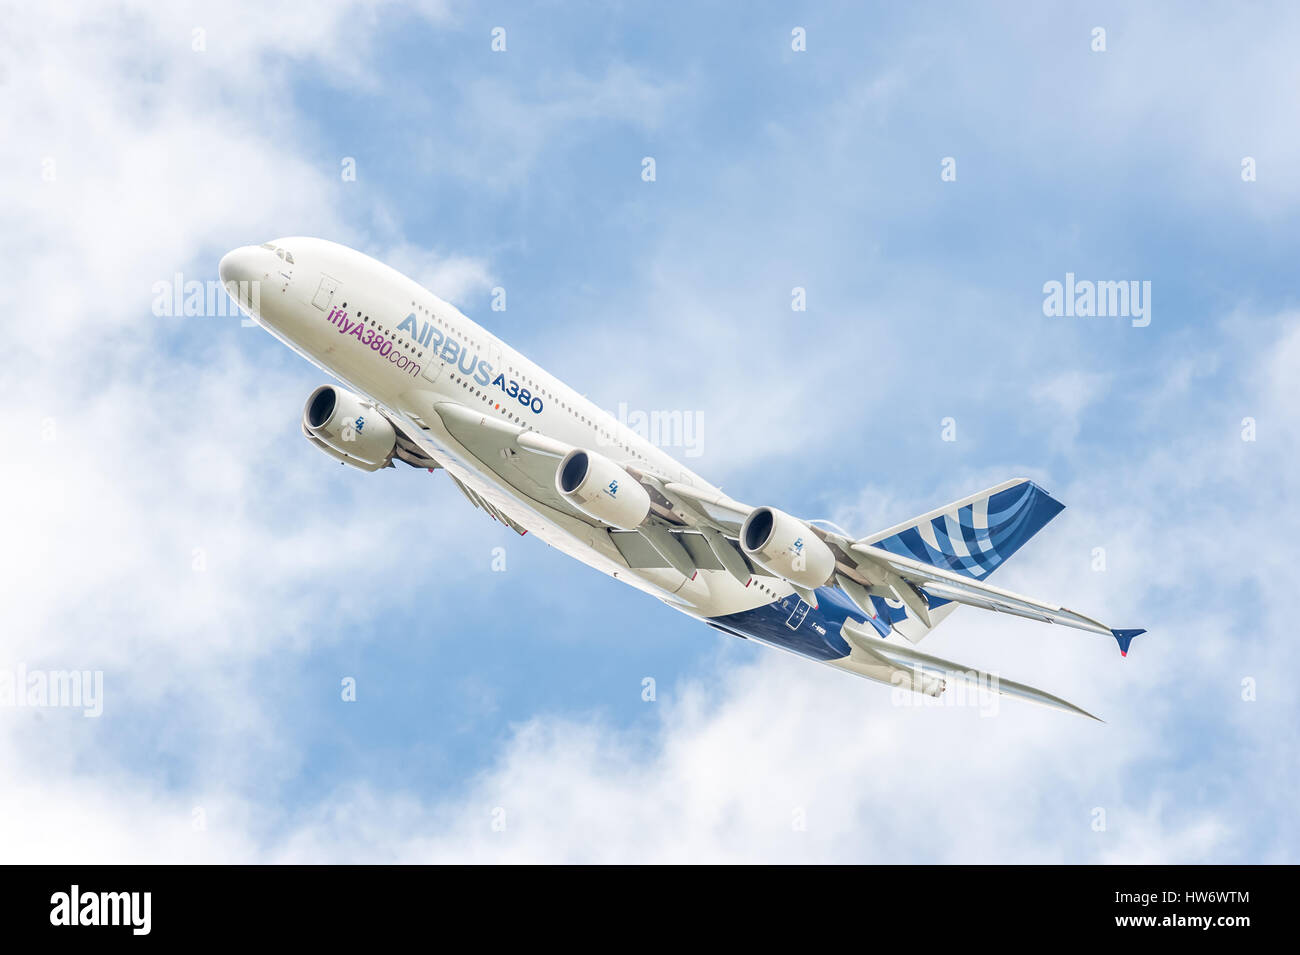 Airbus A380 on a low-level banked turn prior to landing at an aviation trade event. - Stock Image